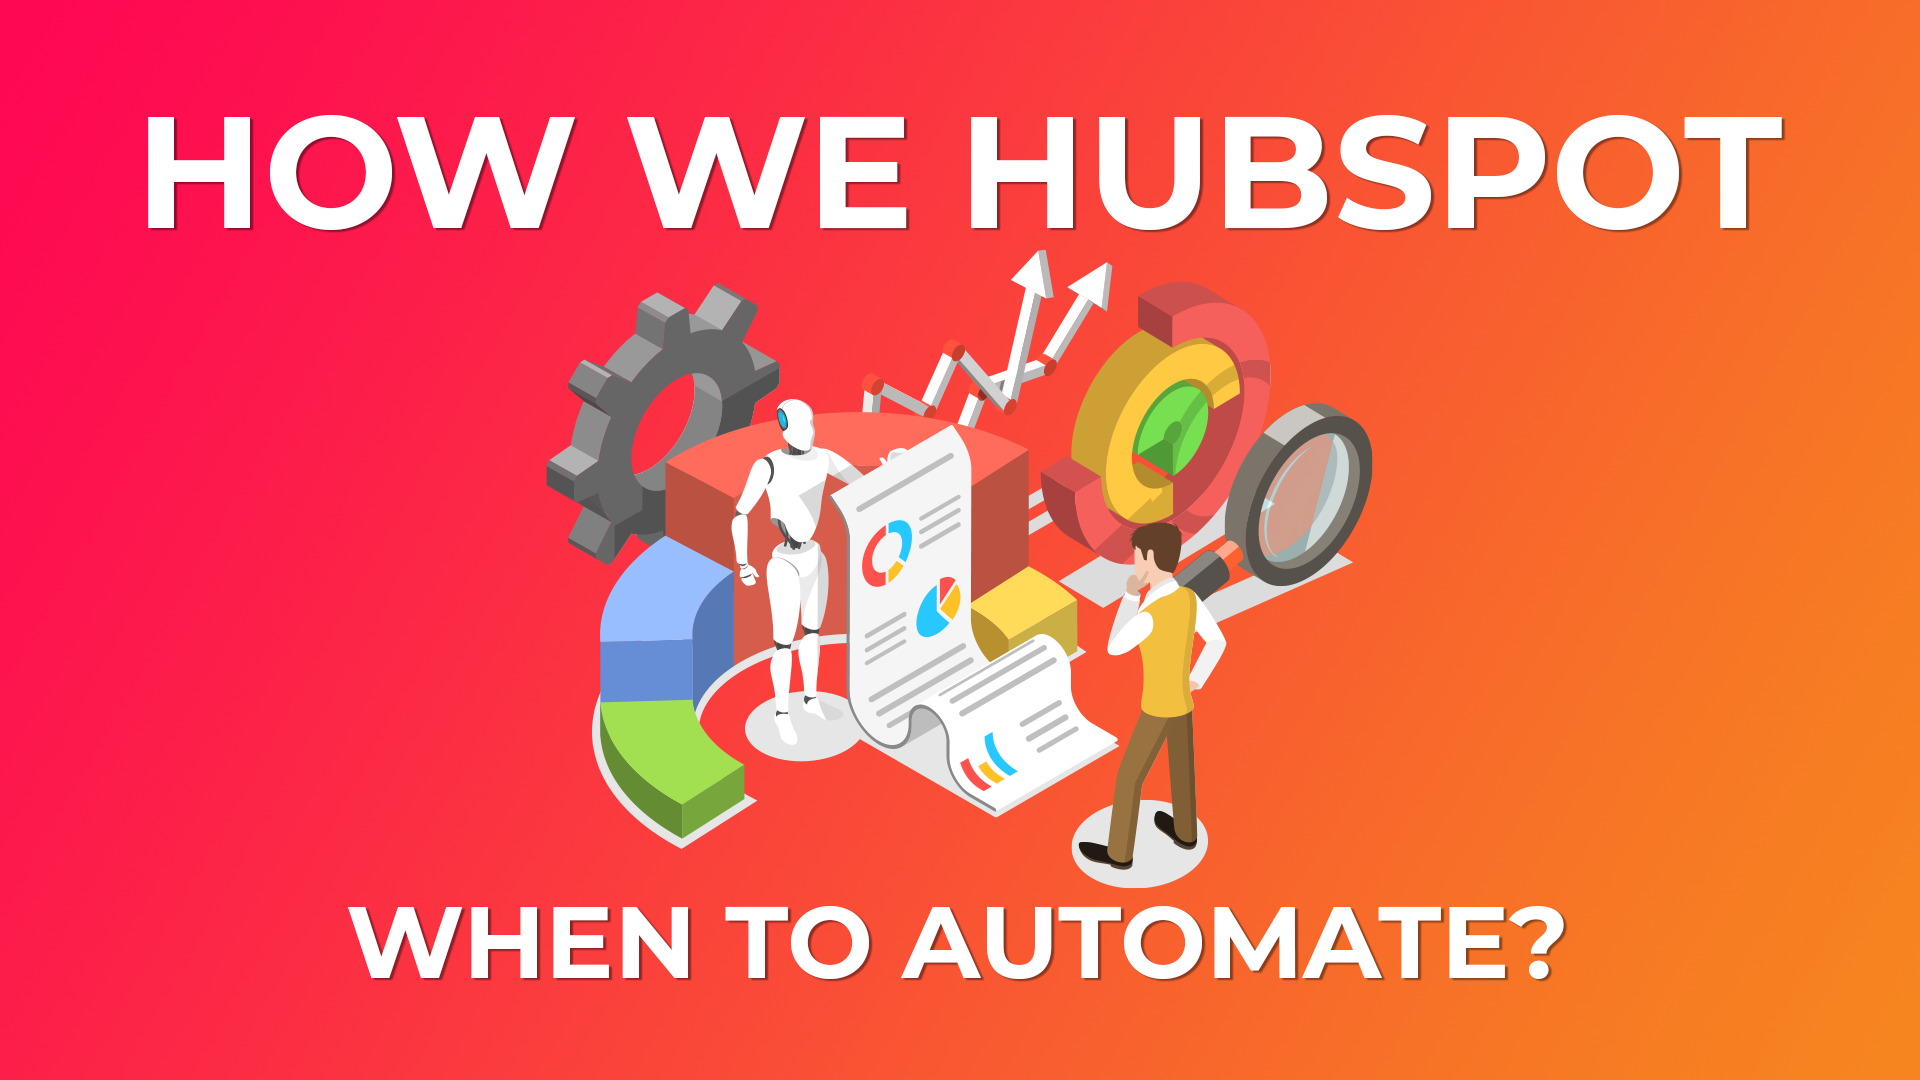 How we HubSpot - When to Automate